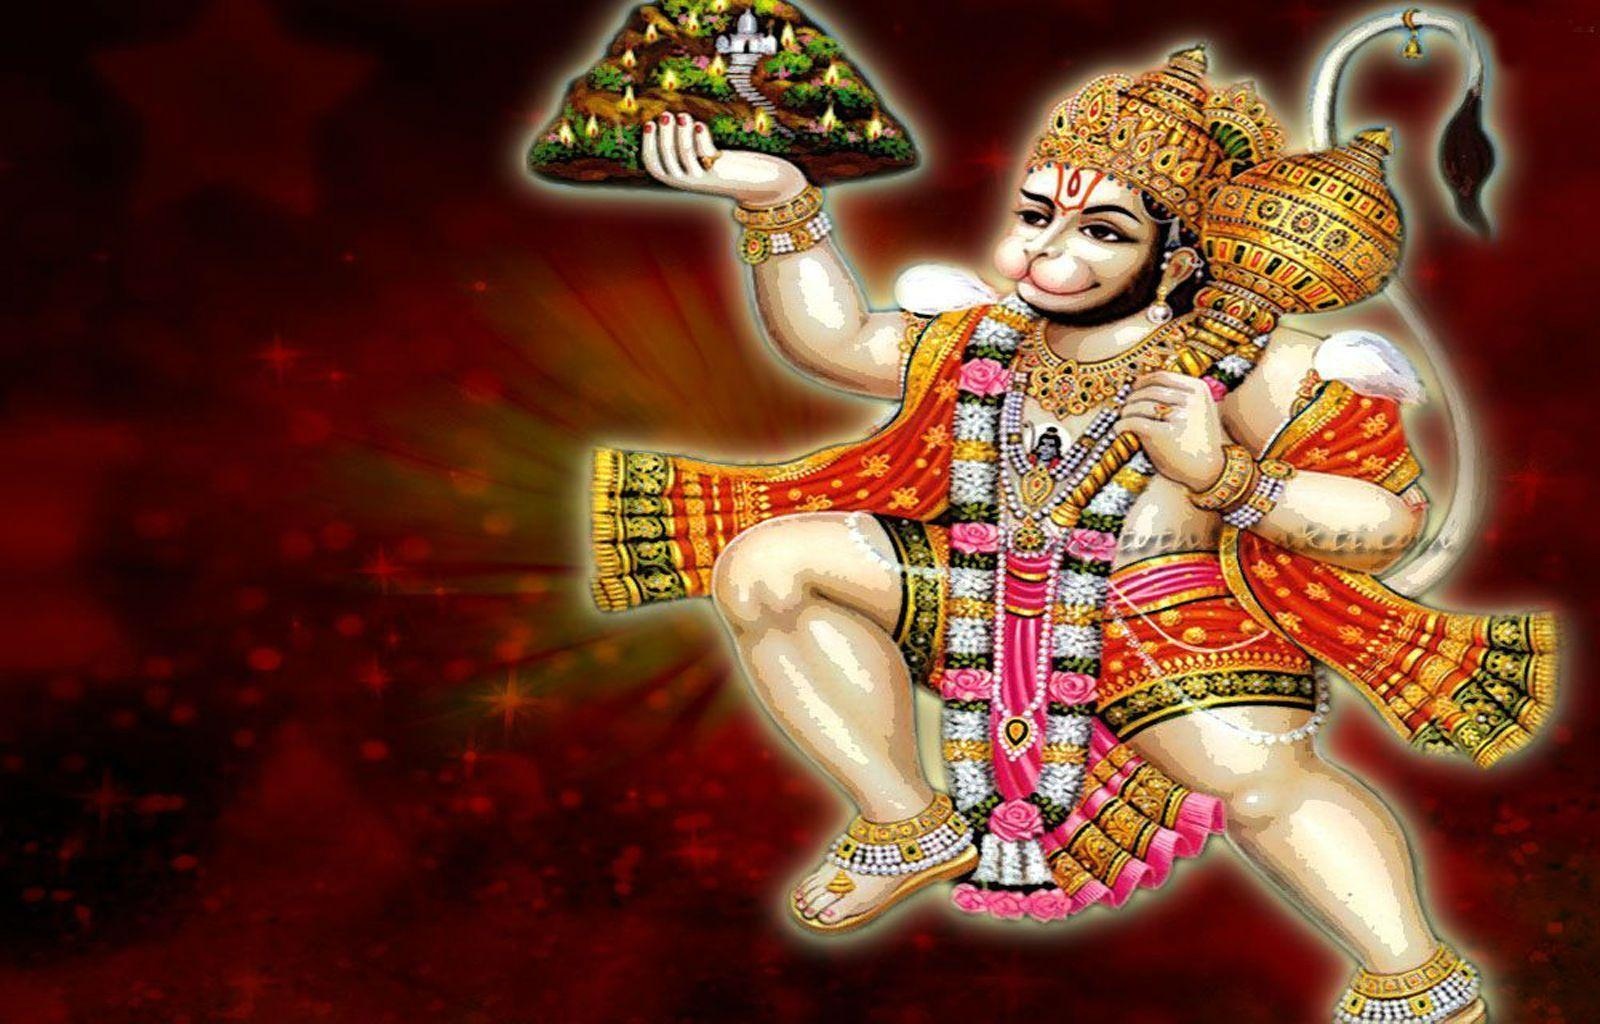 Hanuman wallpaper, photos, pictures & Images for desktop background